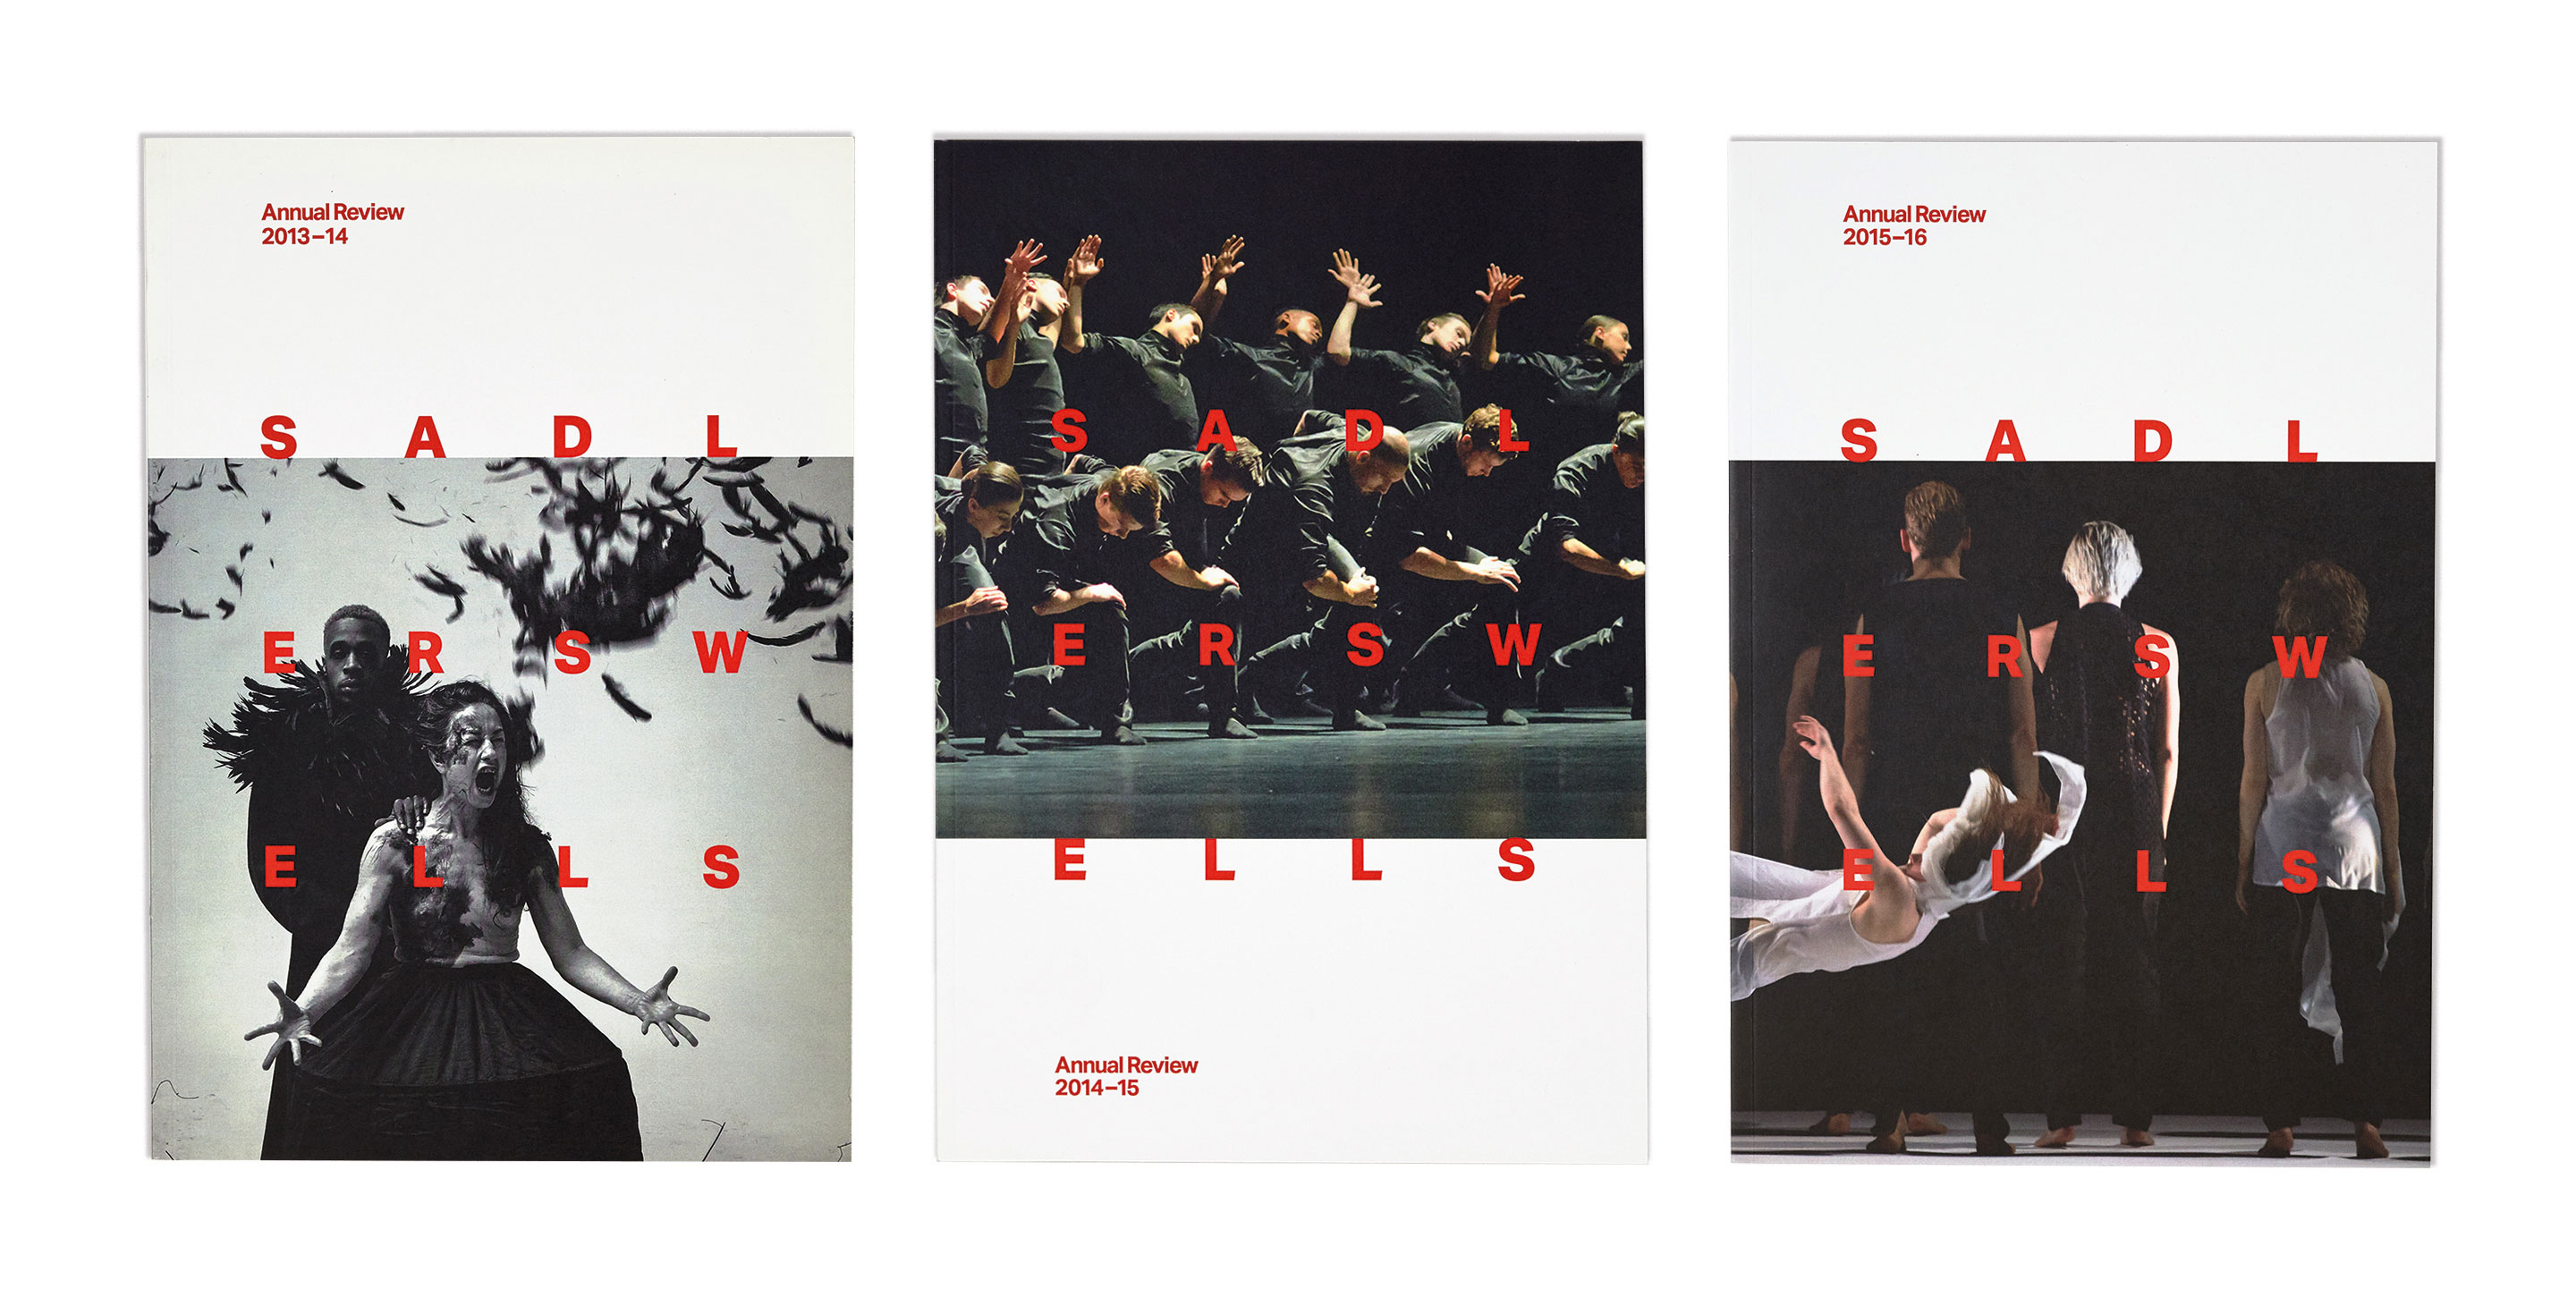 Sadlers Wells annual reports